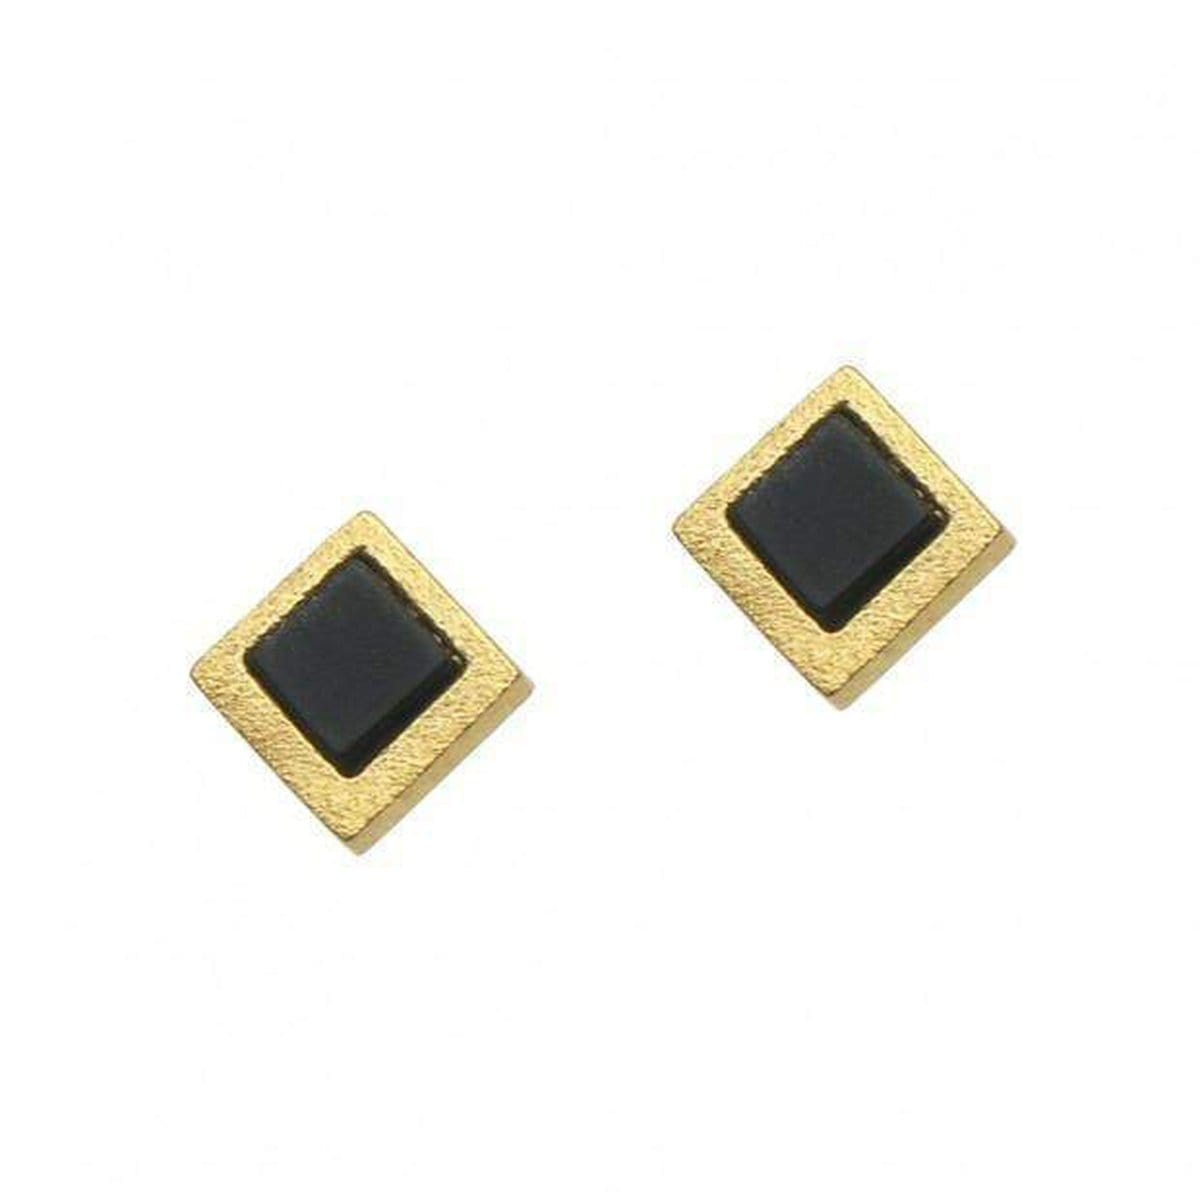 Tabis Onyx Earrings - 19520896-Bernd Wolf-Renee Taylor Gallery